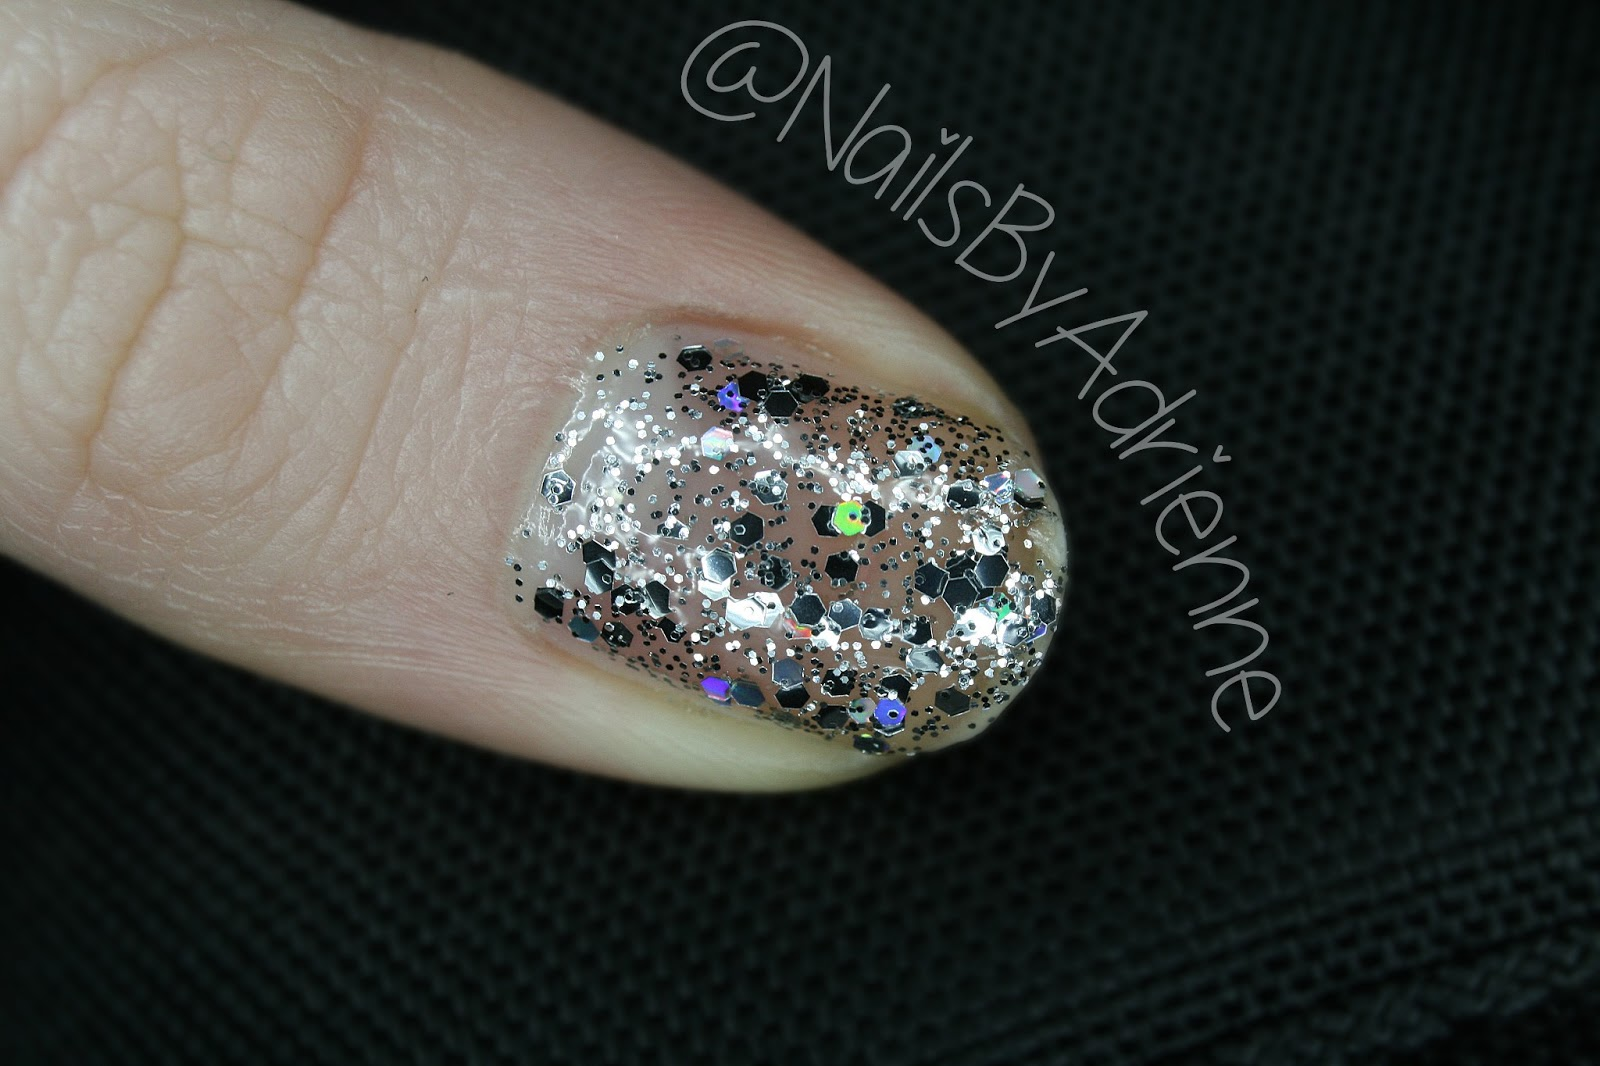 Nails By Adrienne : Nail Polish Review: Dazzle Me, by Pure Ice